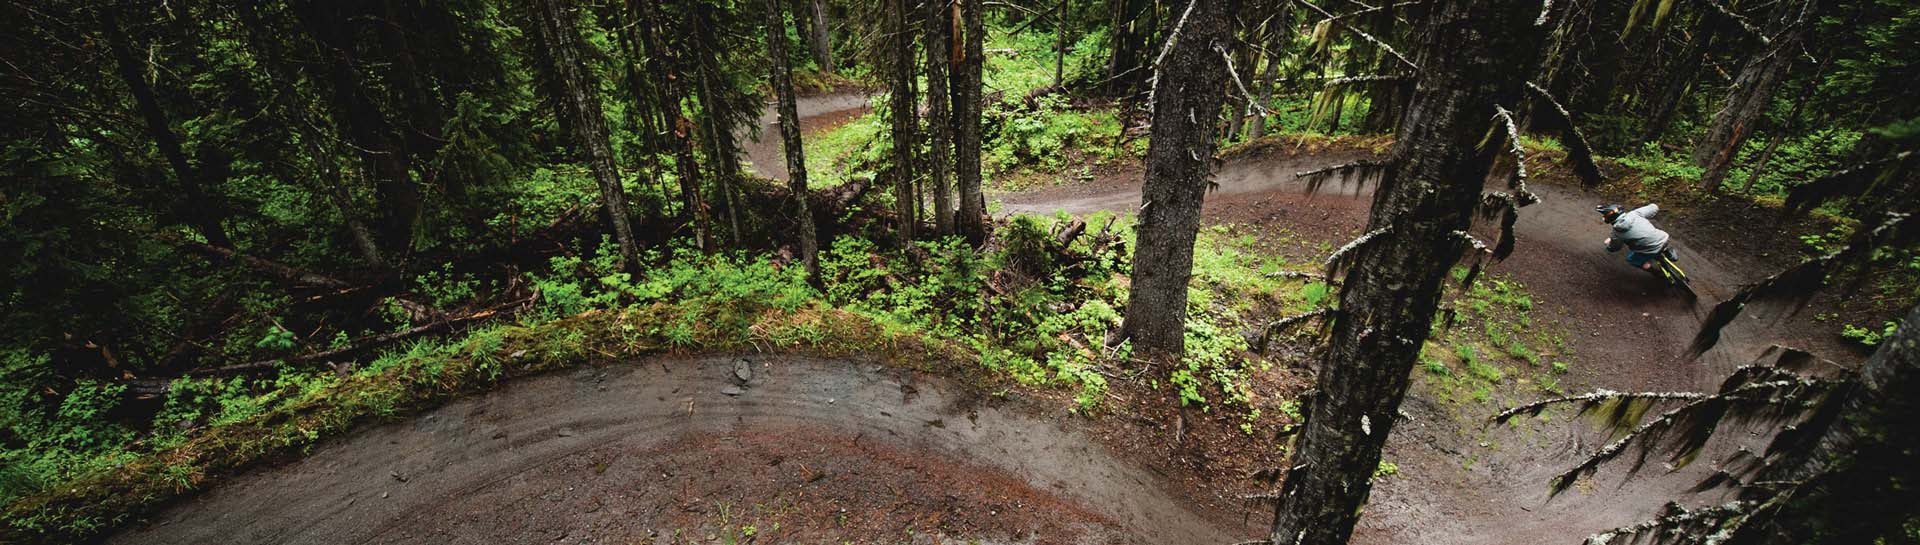 person biking on trail through woods - Photo Credit to SilverStar